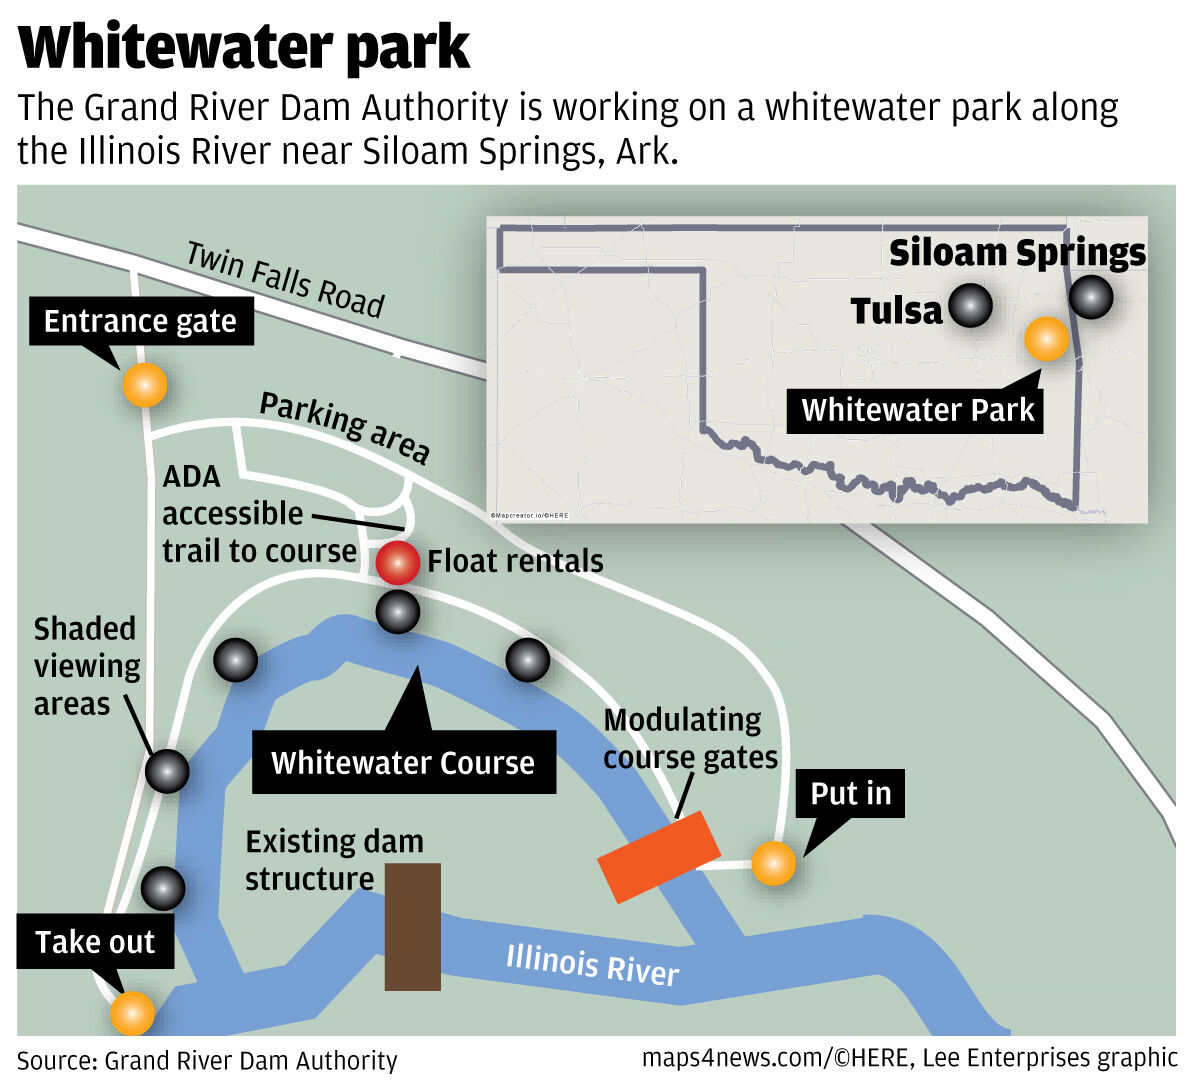 Whitewater park